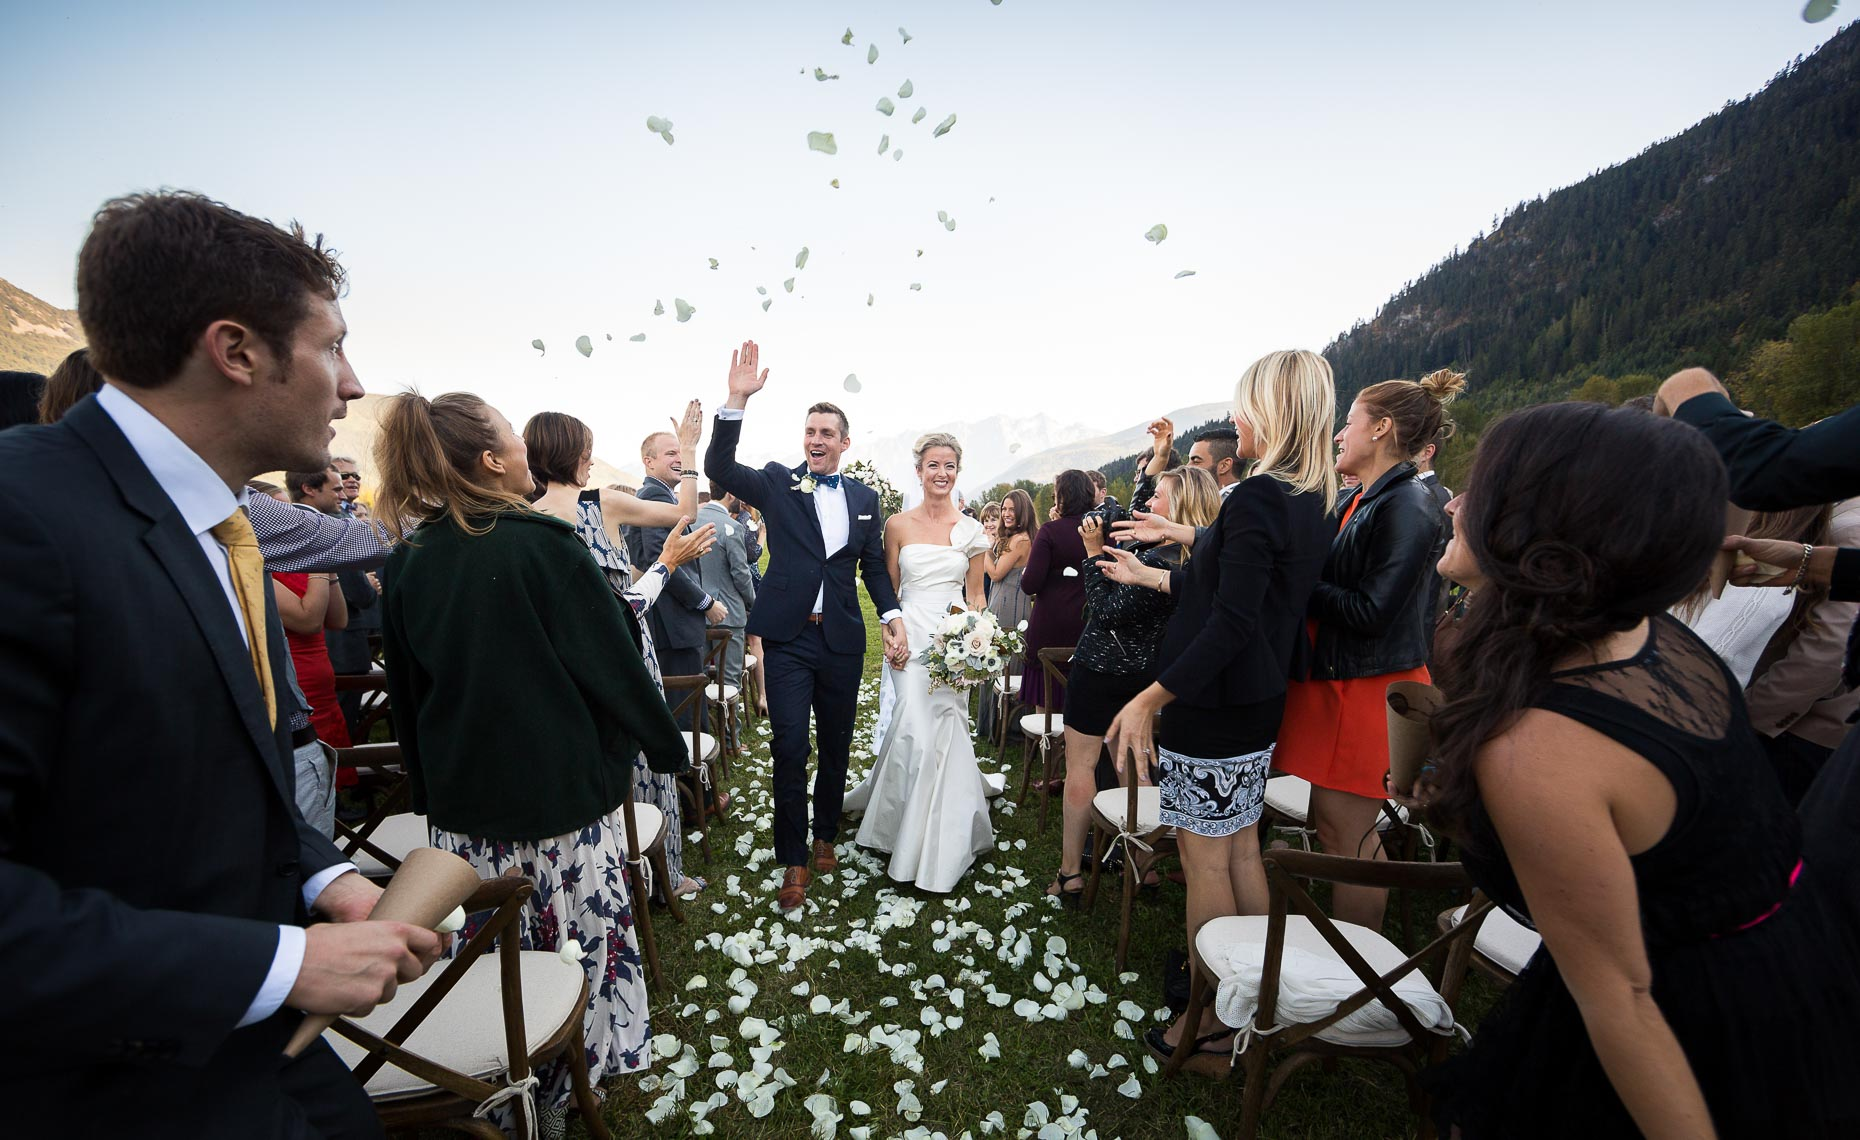 Wedding celebration in pemberton, BC